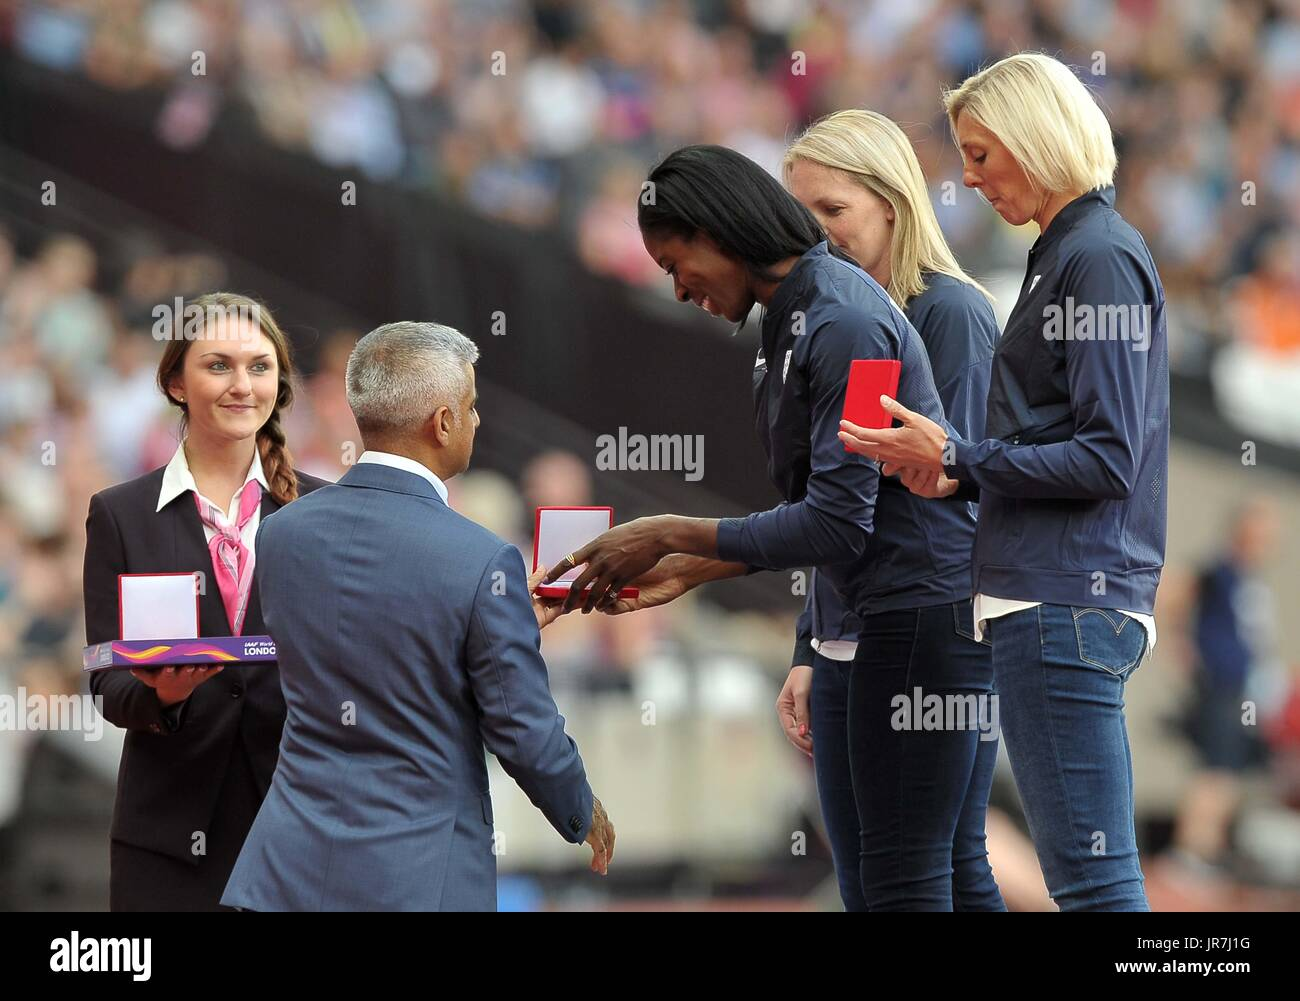 Christine Ohuruogu recieves her Bronze medal for the IAAF world championships in Berlin 2009 from Mayor of London Sadiq Khan. IAAF World athletics championships. London Olympic stadium. Queen Elizabeth Olympic park. Stratford. London. UK. 04/08/2017. - Stock Image